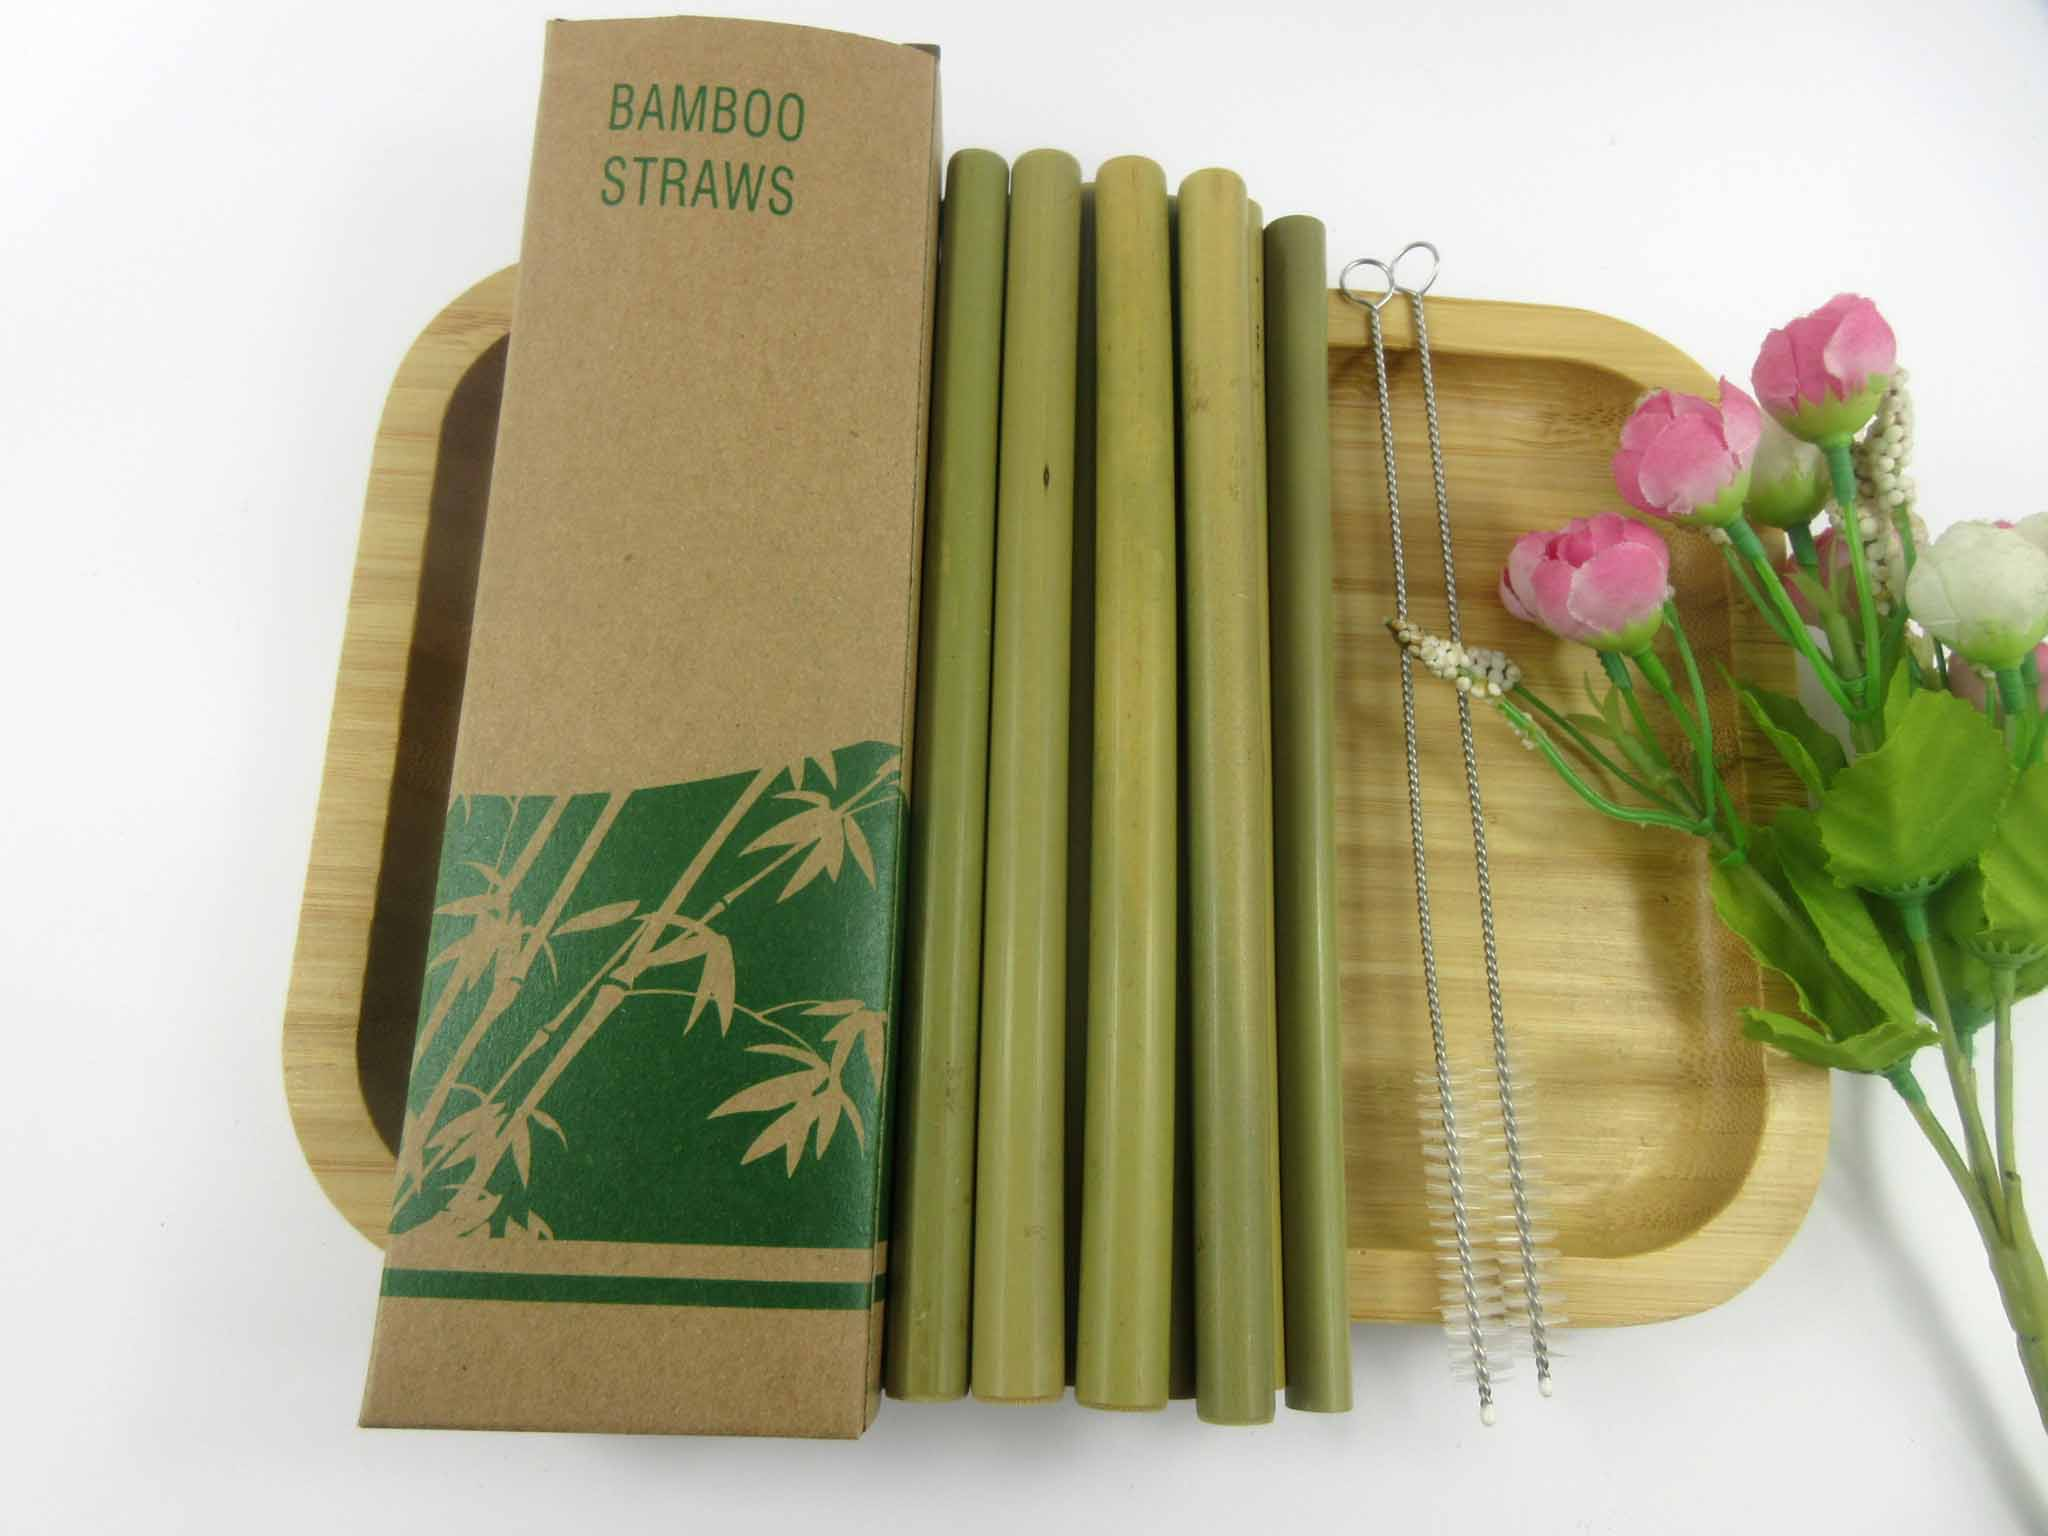 Wholesales 100pcs Eco Friendly Reusable Straw 20cm Green Bamboo Smoothie Straws Pointed Coffee Milk Drinking Straw image